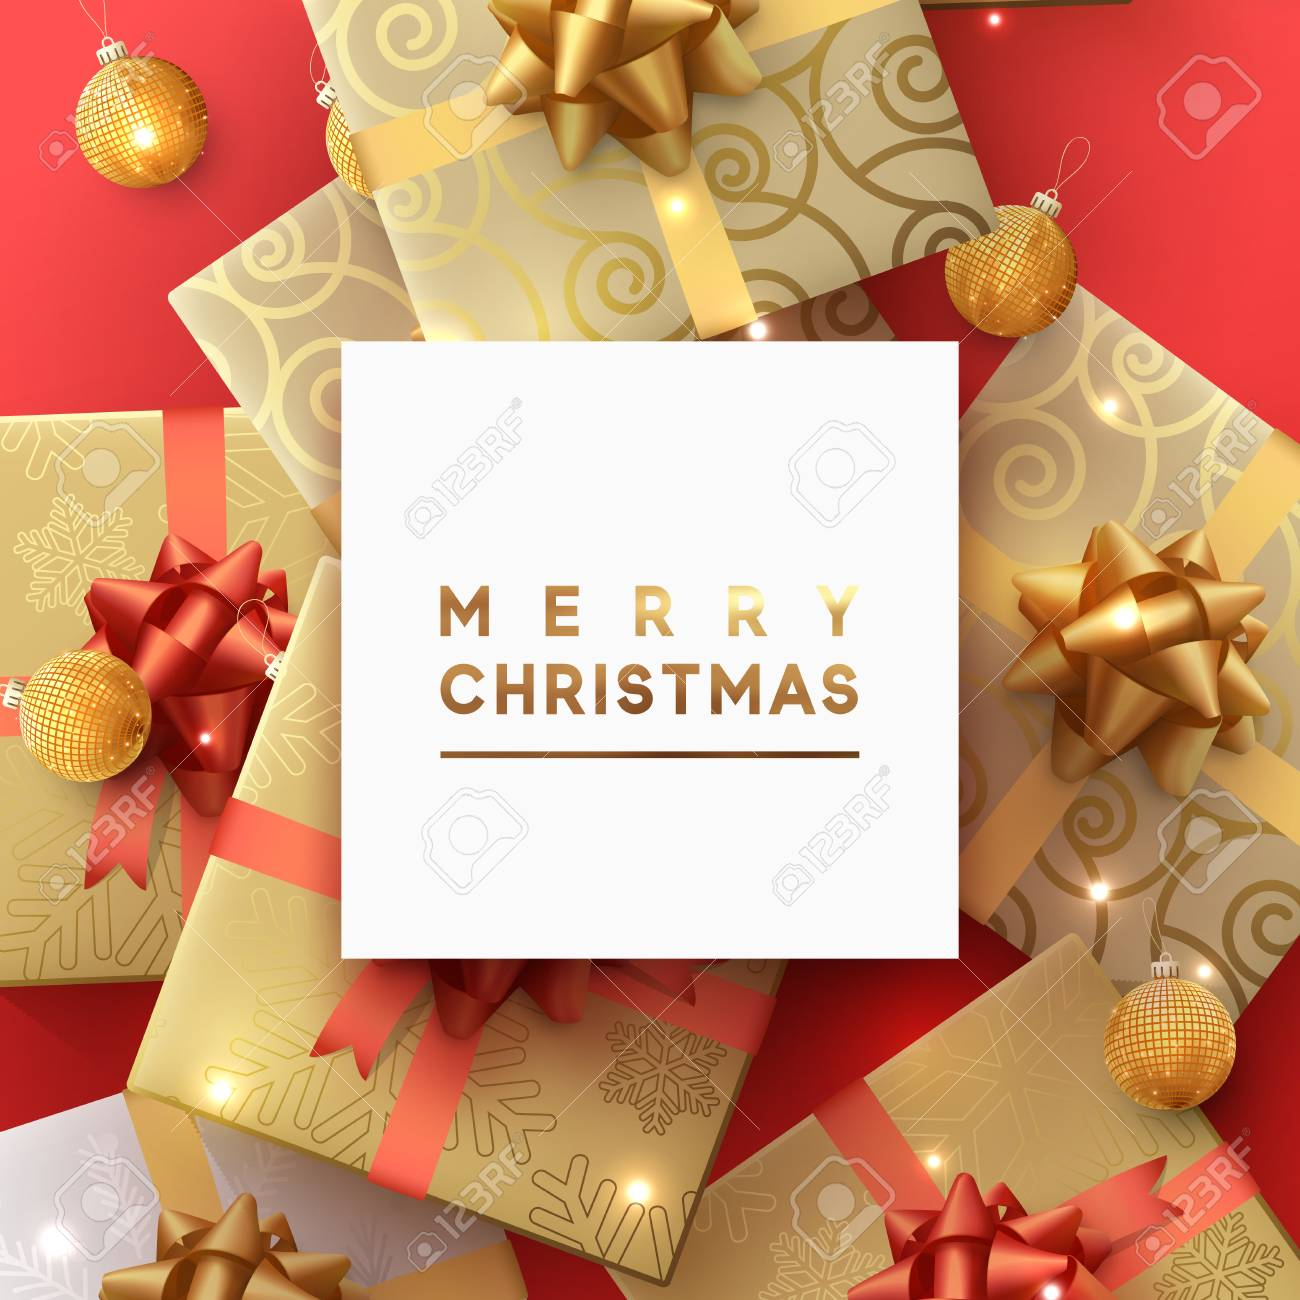 Merry Christmas And Happy New Year Greeting Card. Xmas Holiday ...